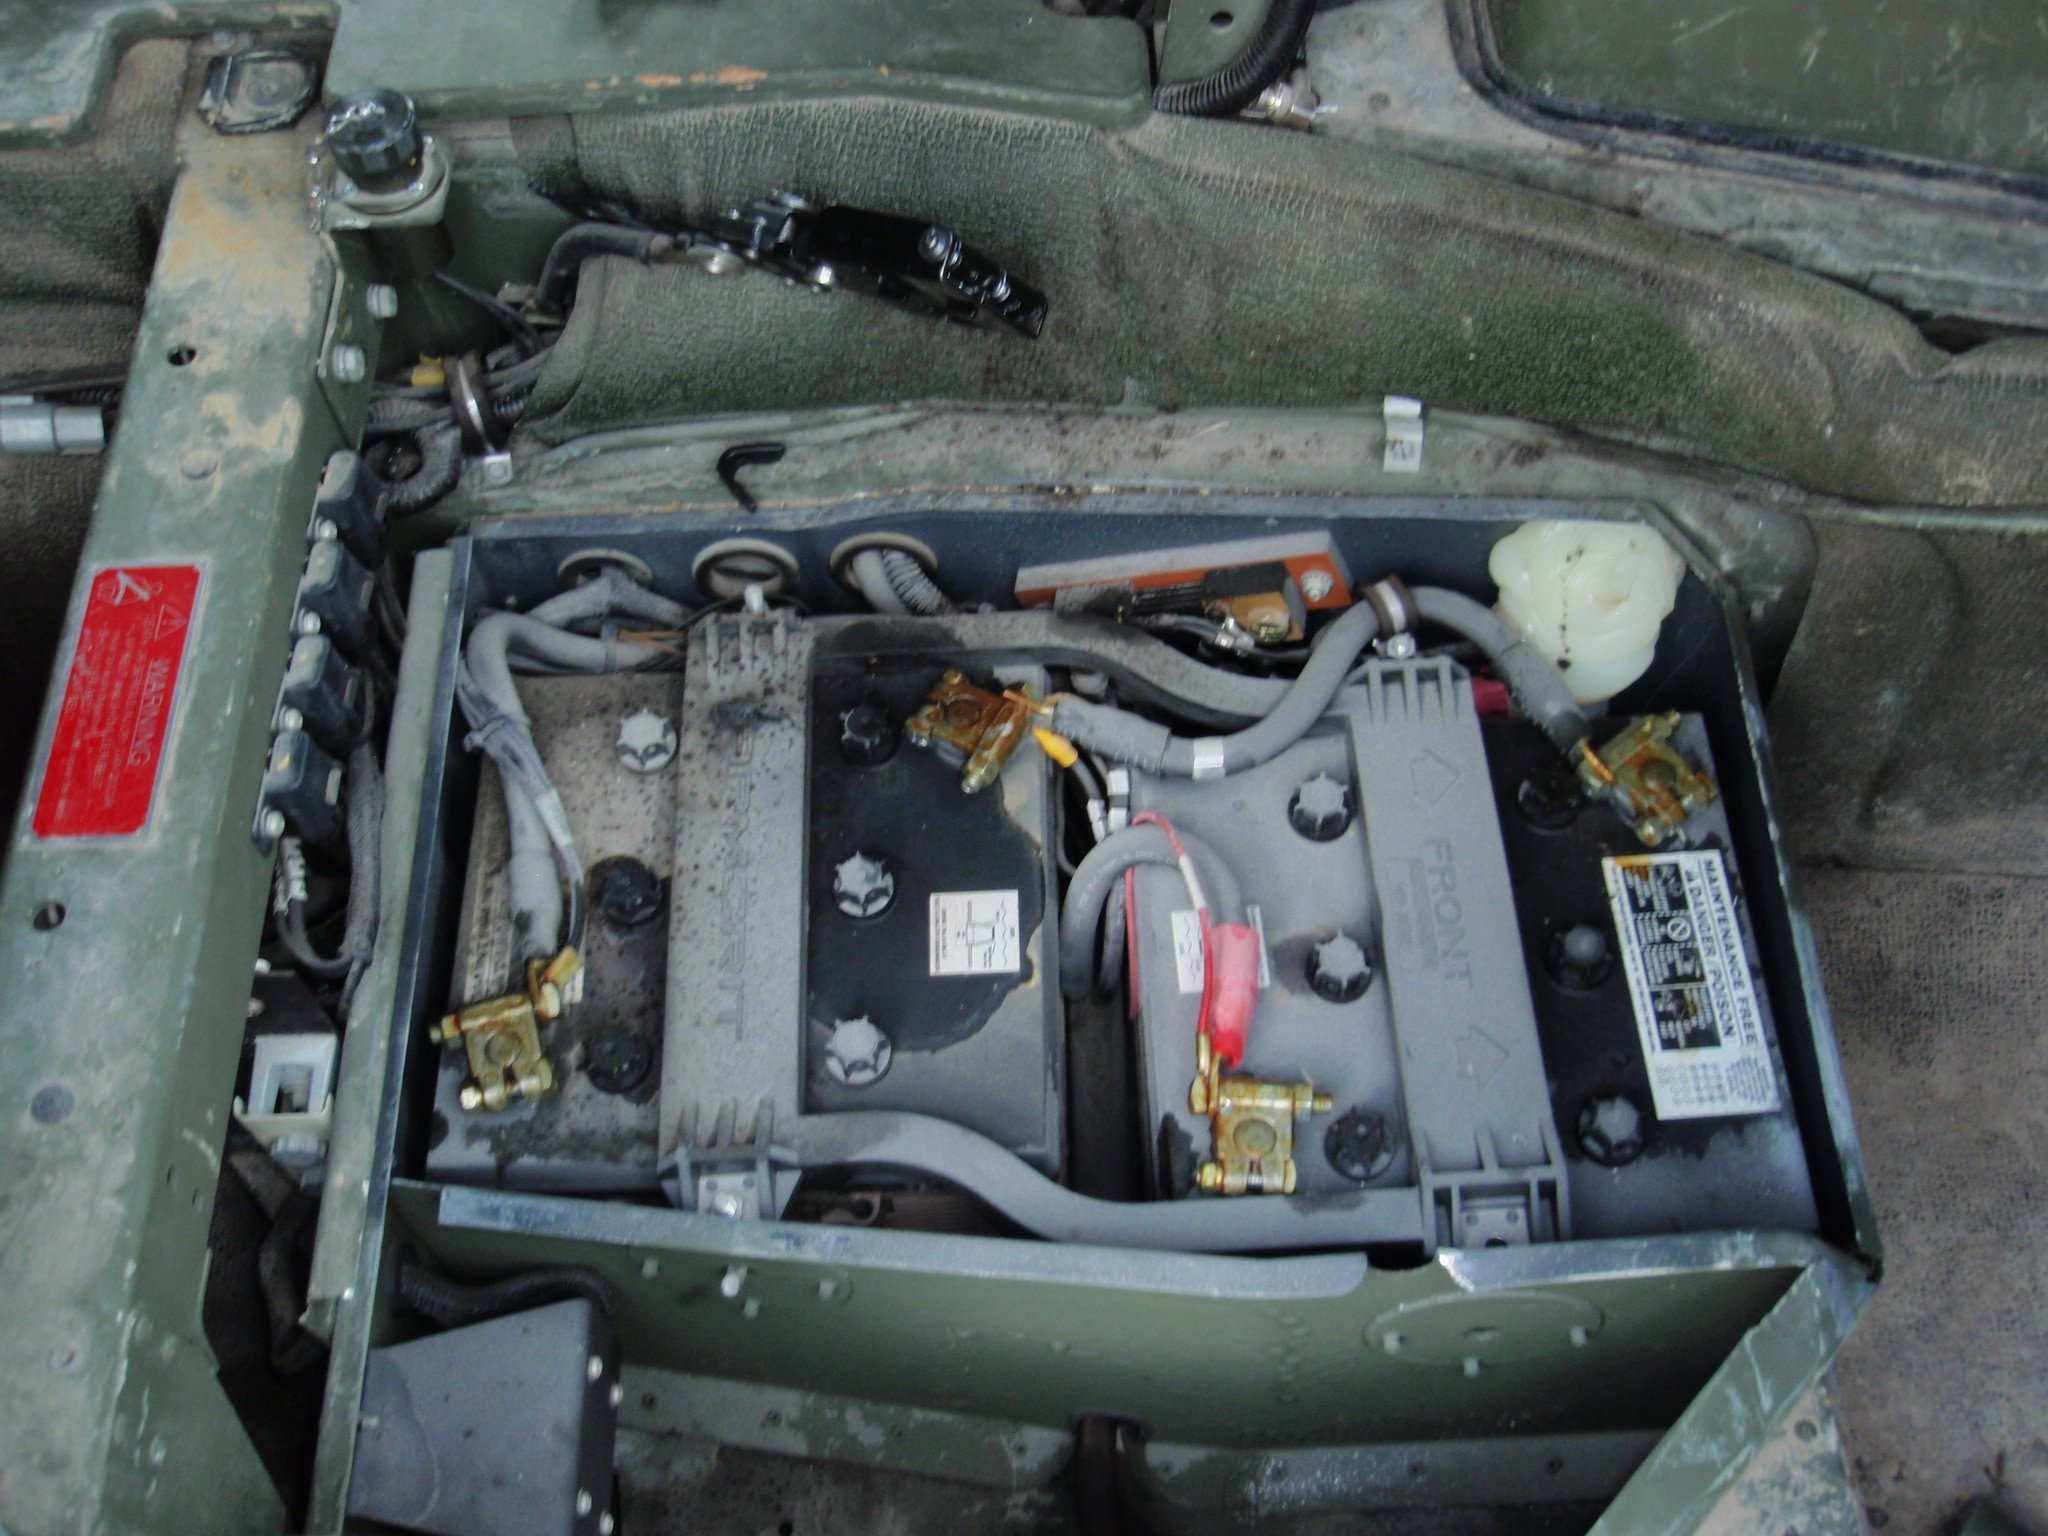 humvee wiring diagram auto electrical wiring diagram sunpro super tach 3 wiring diagram hmmwv wiring schematic hmmwv pickup